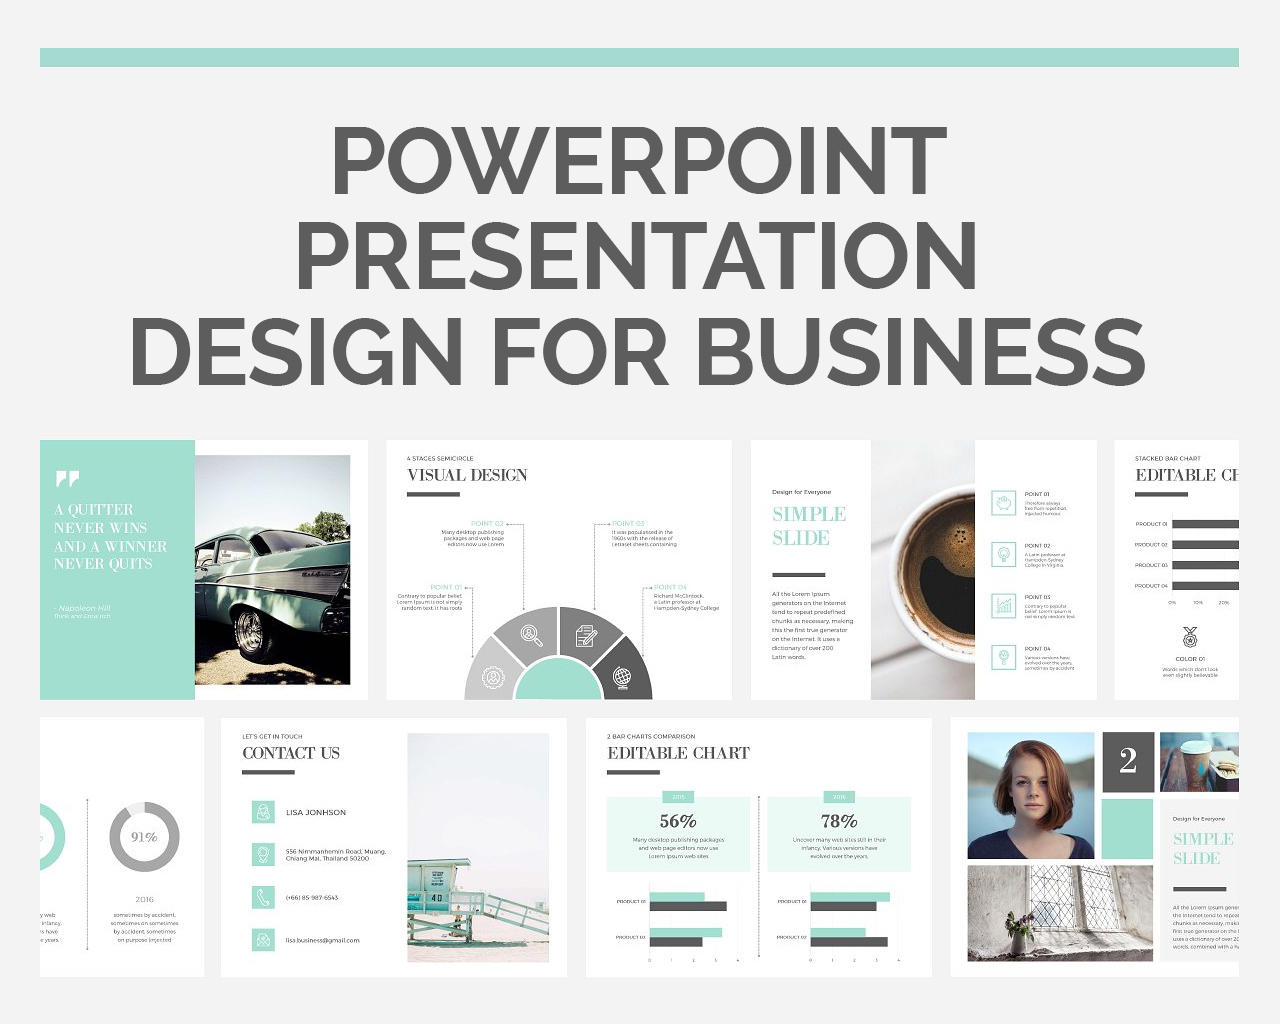 PowerPoint Presentation Design for Business by madridnyc - 106571